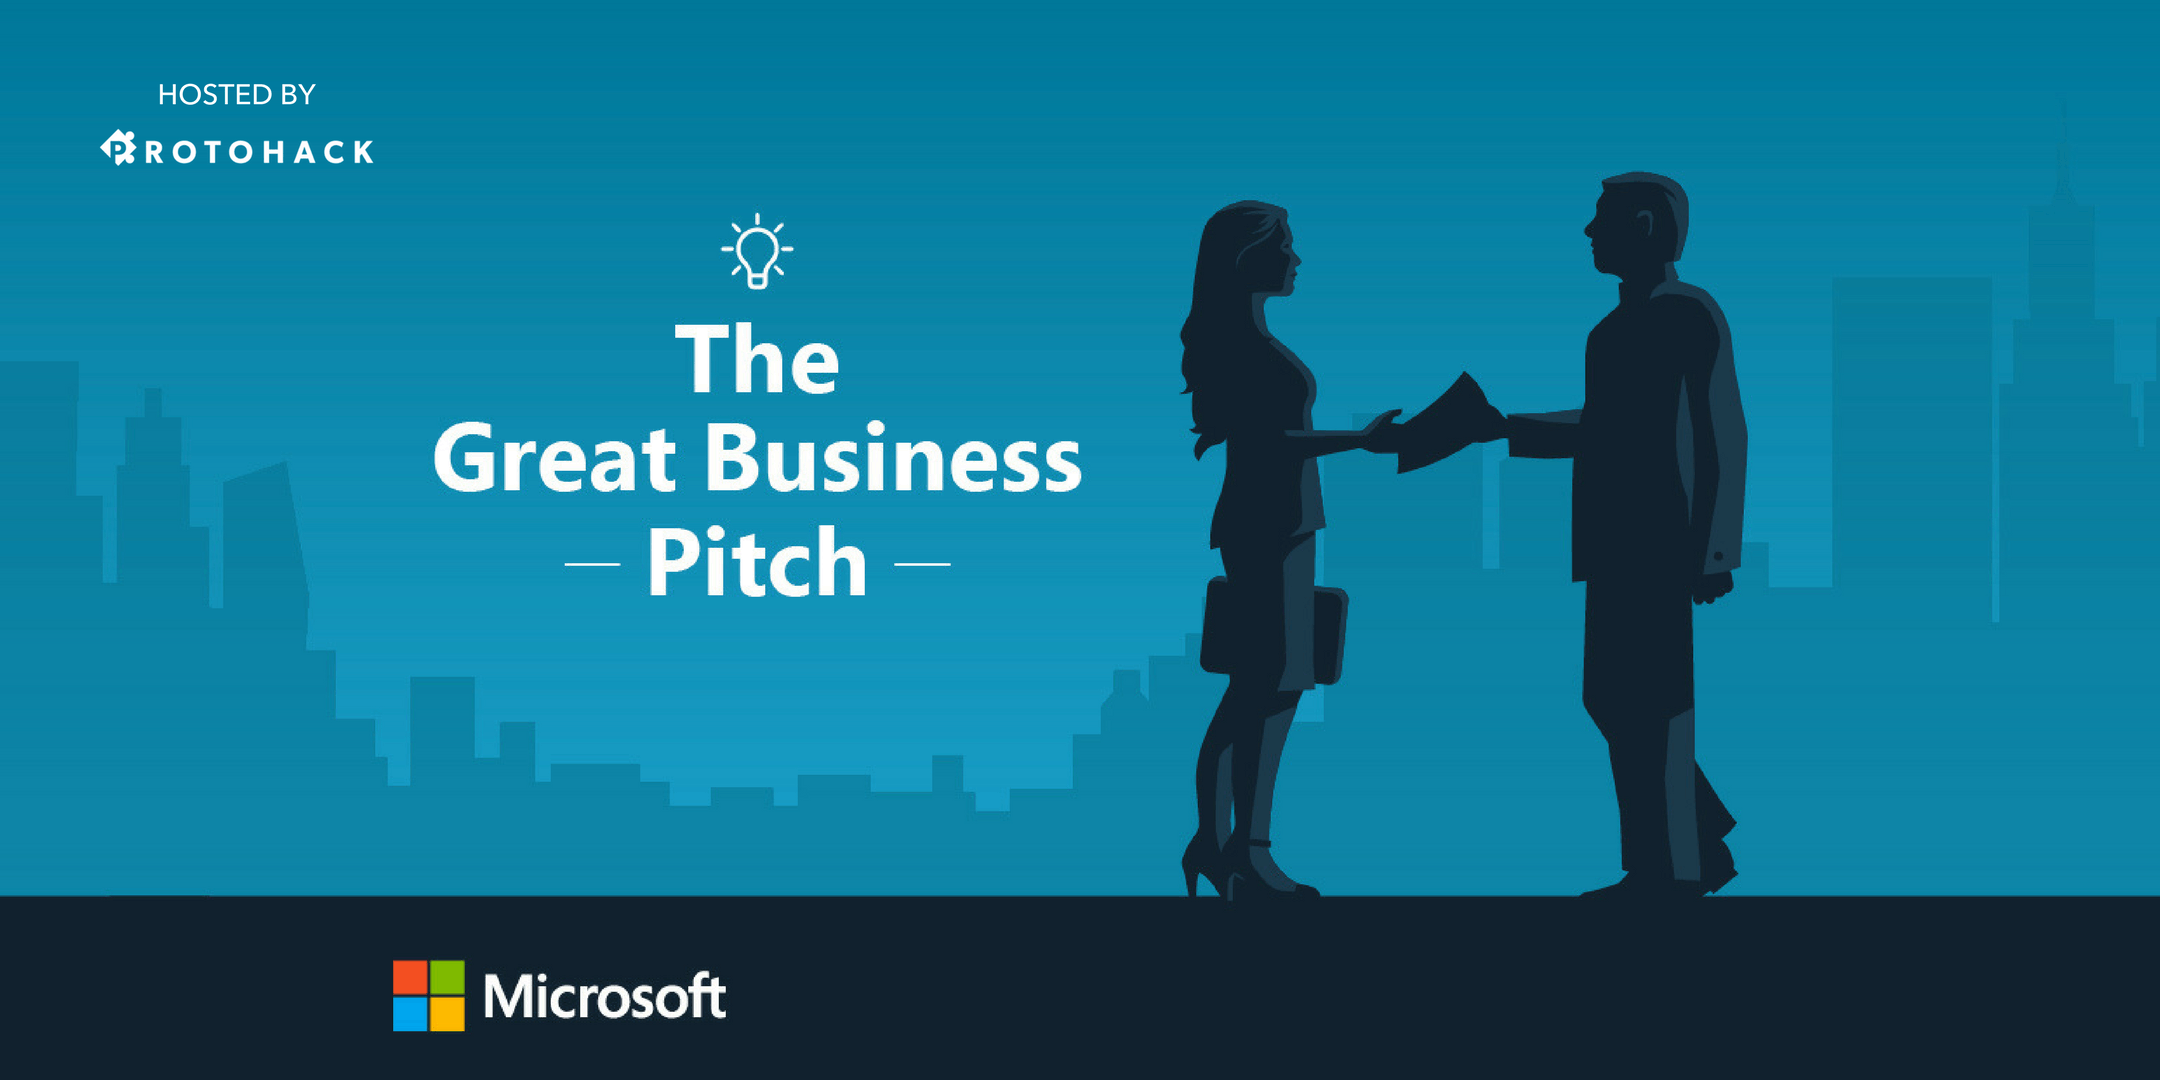 Microsoft's Great Business Pitch, hosted by ProtoHack